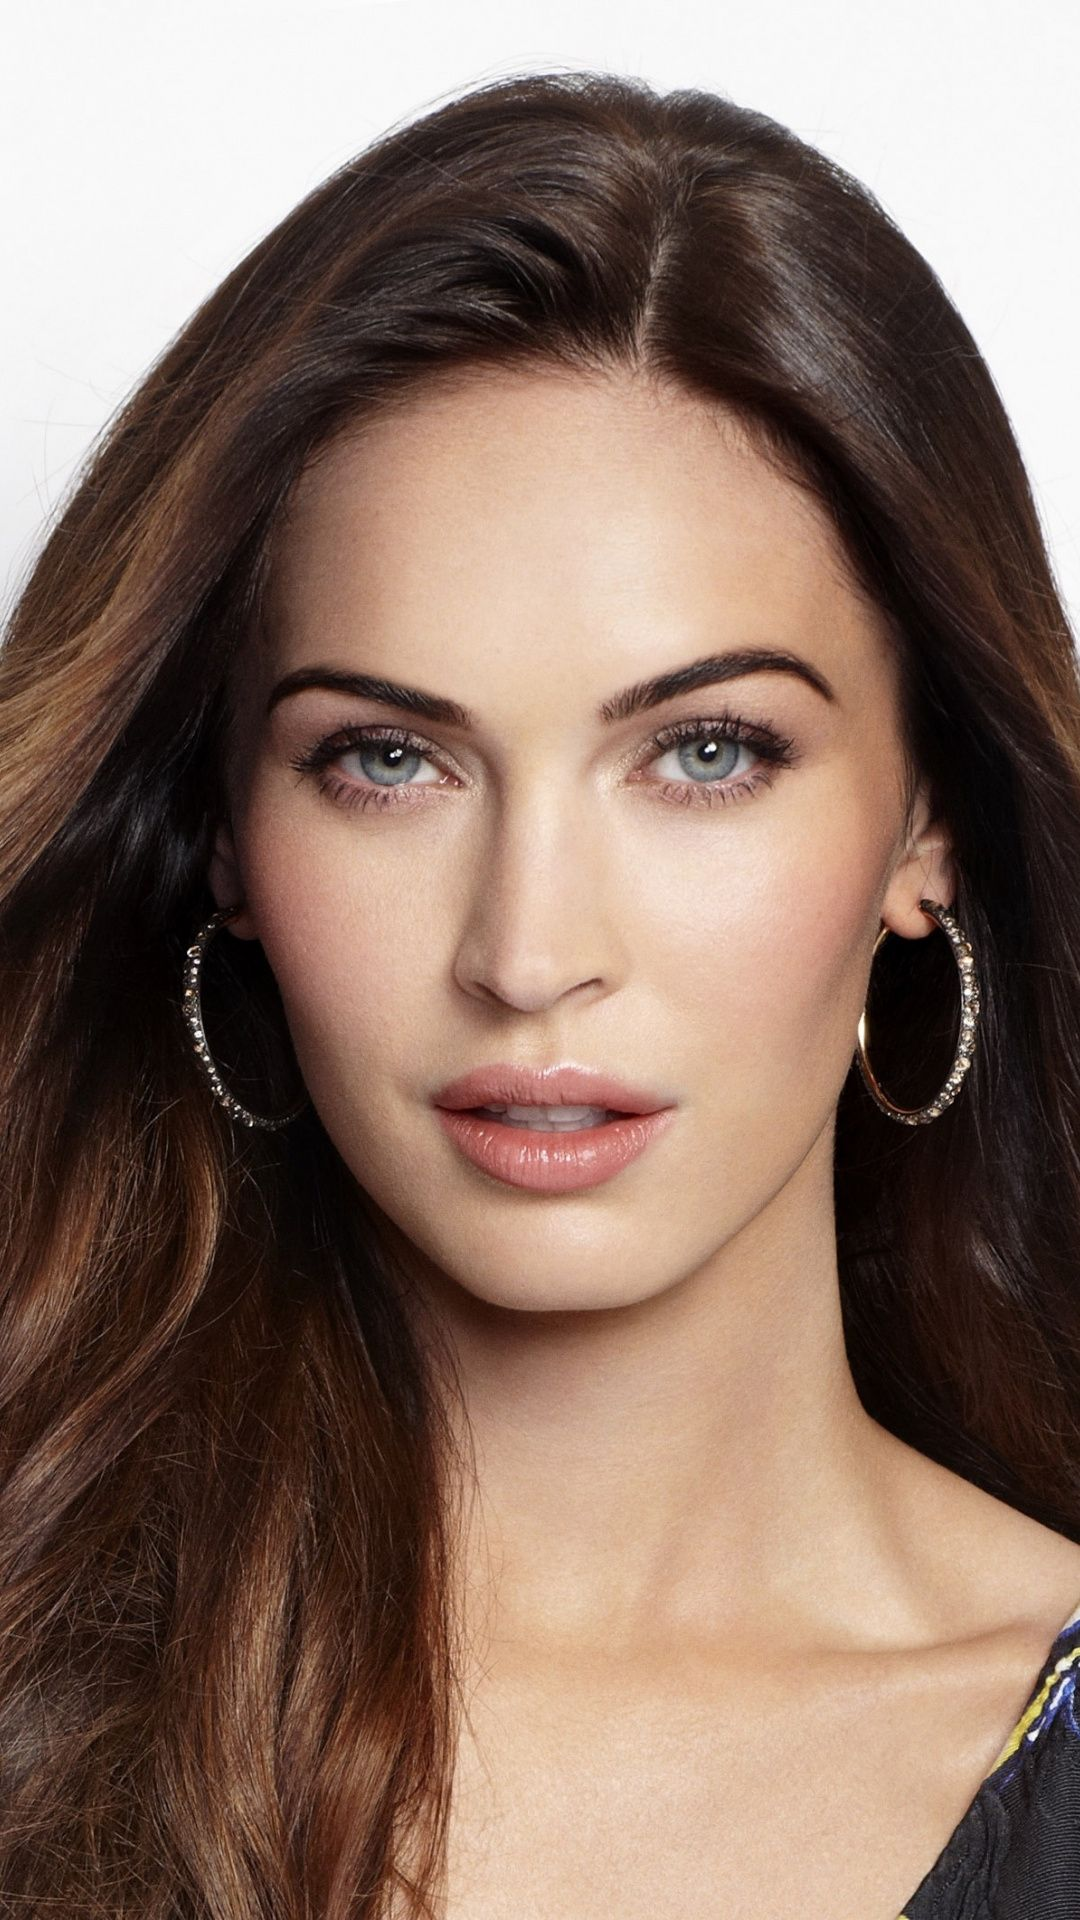 Megan Fox Brunette Model 2018 1080x1920 Wallpaper